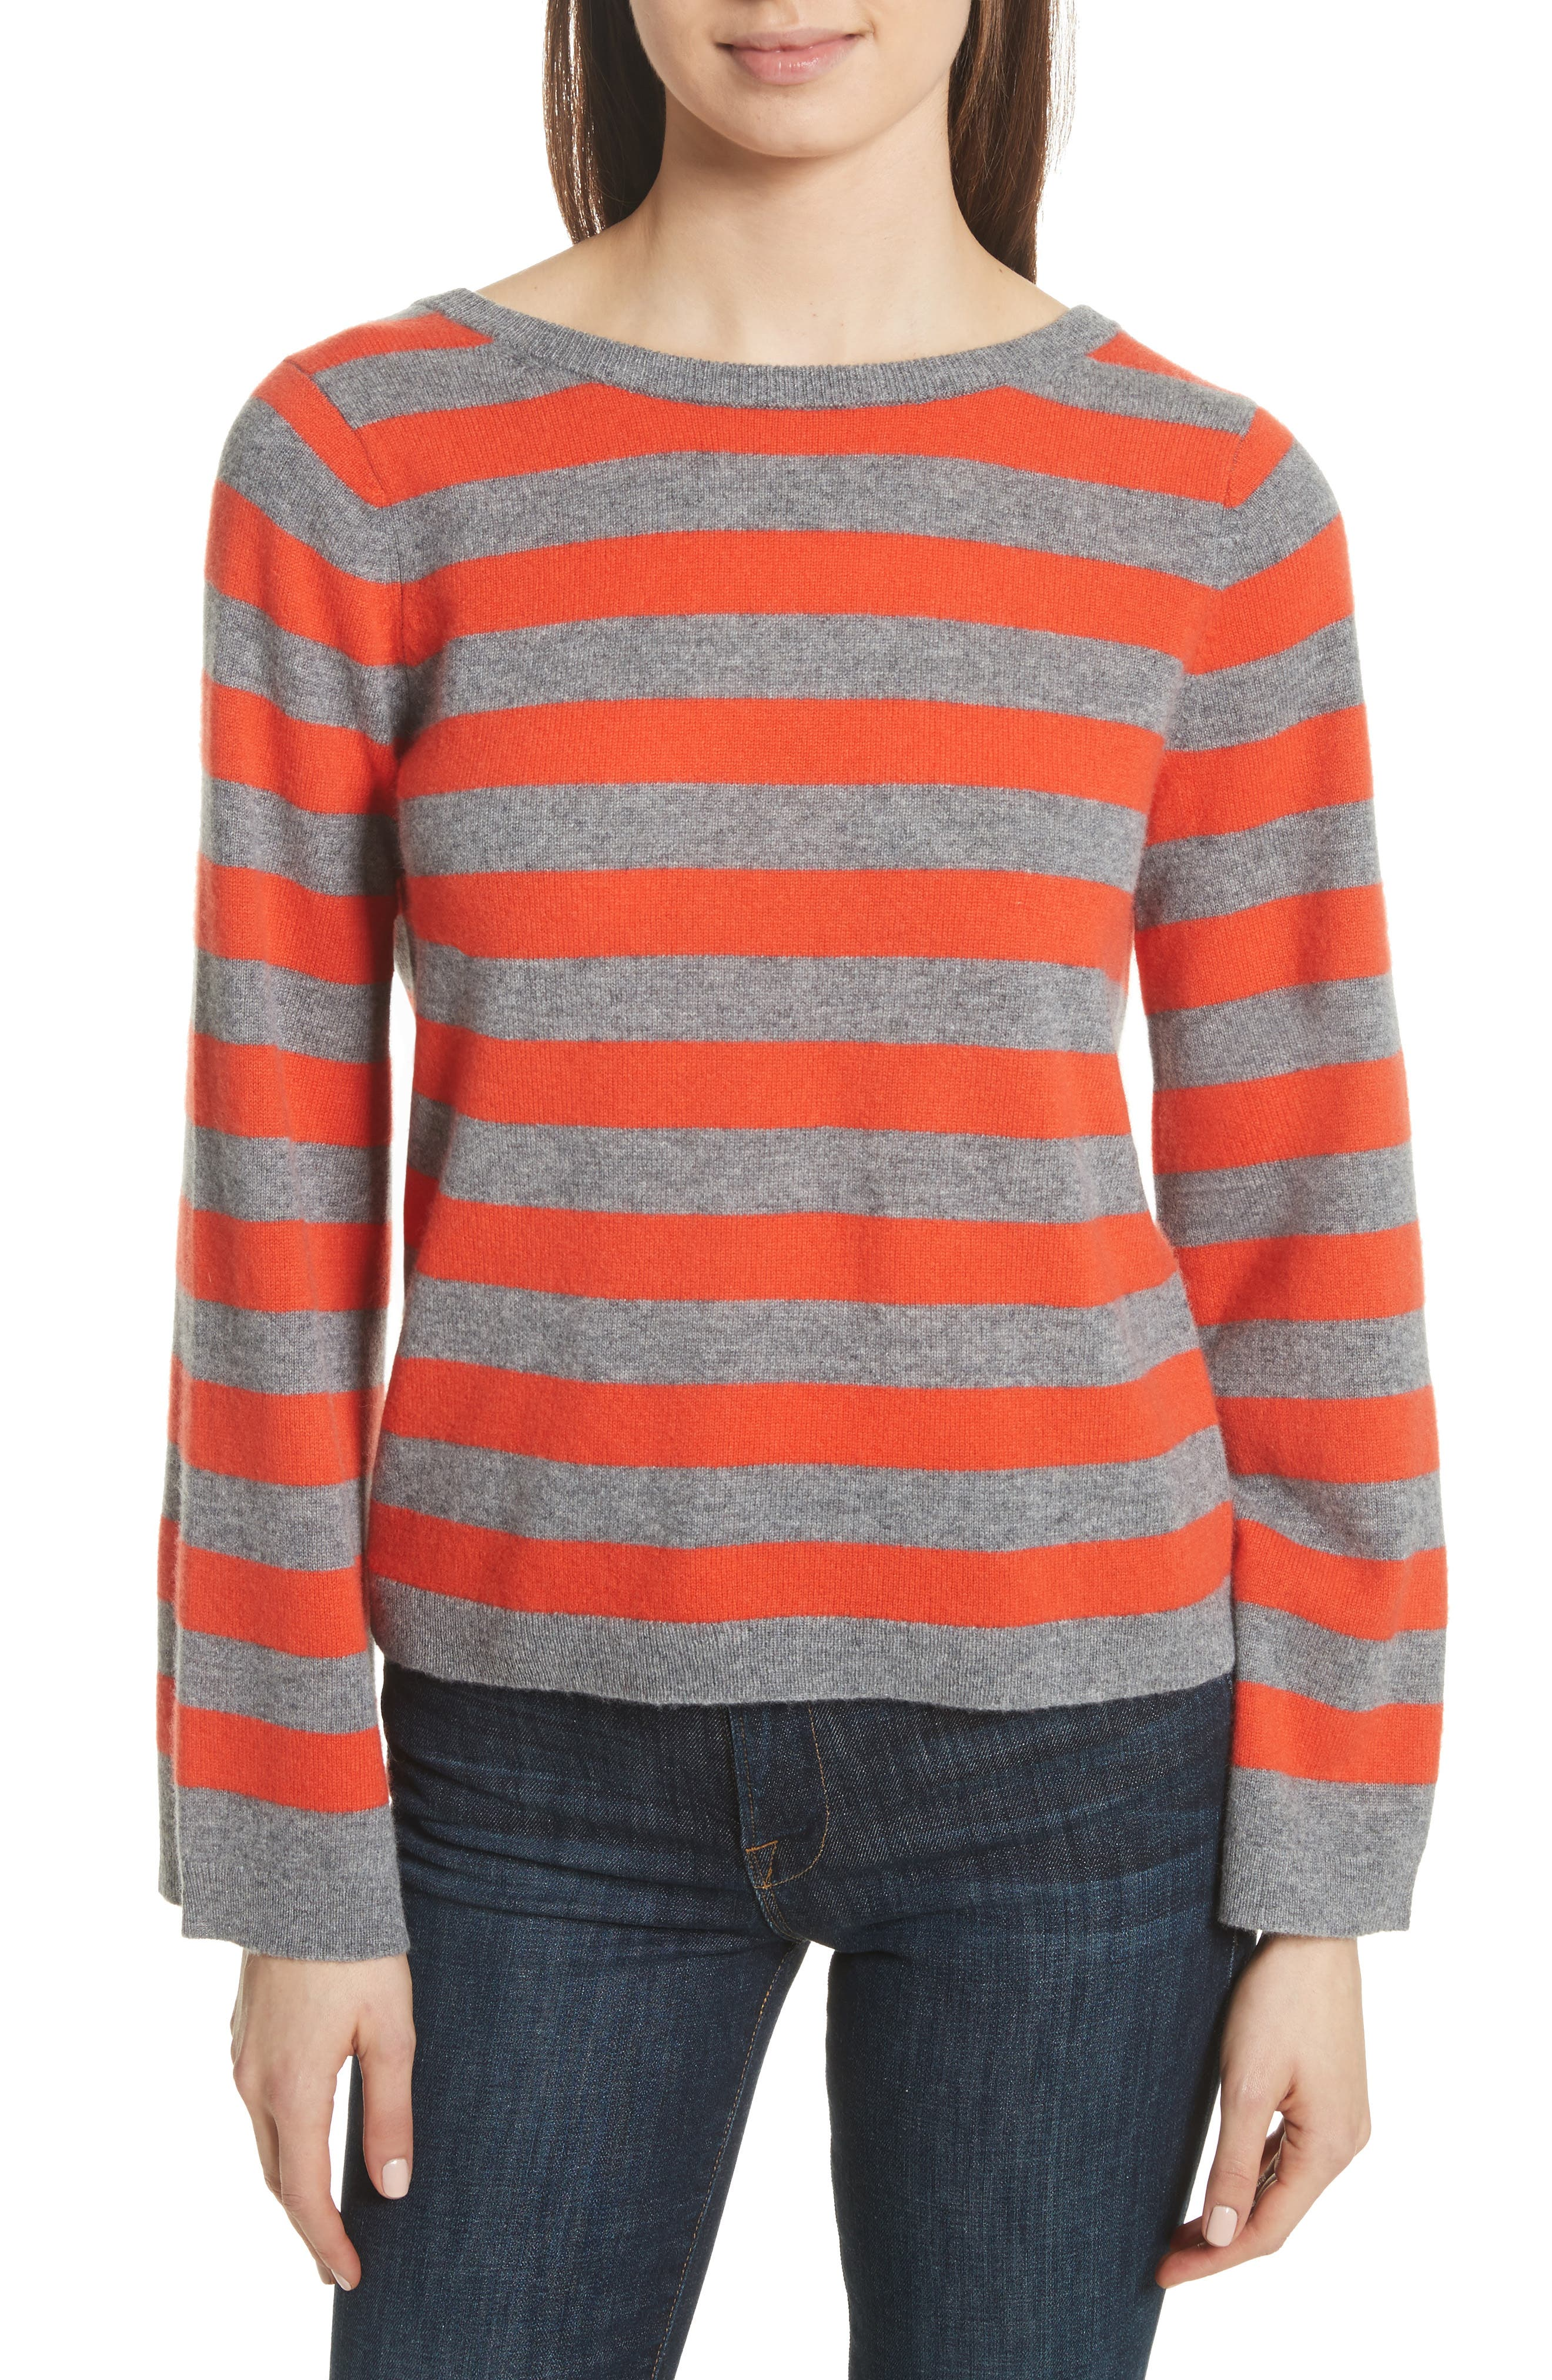 Alternate Image 1 Selected - Equipment Baxley Stripe Cashmere Sweater